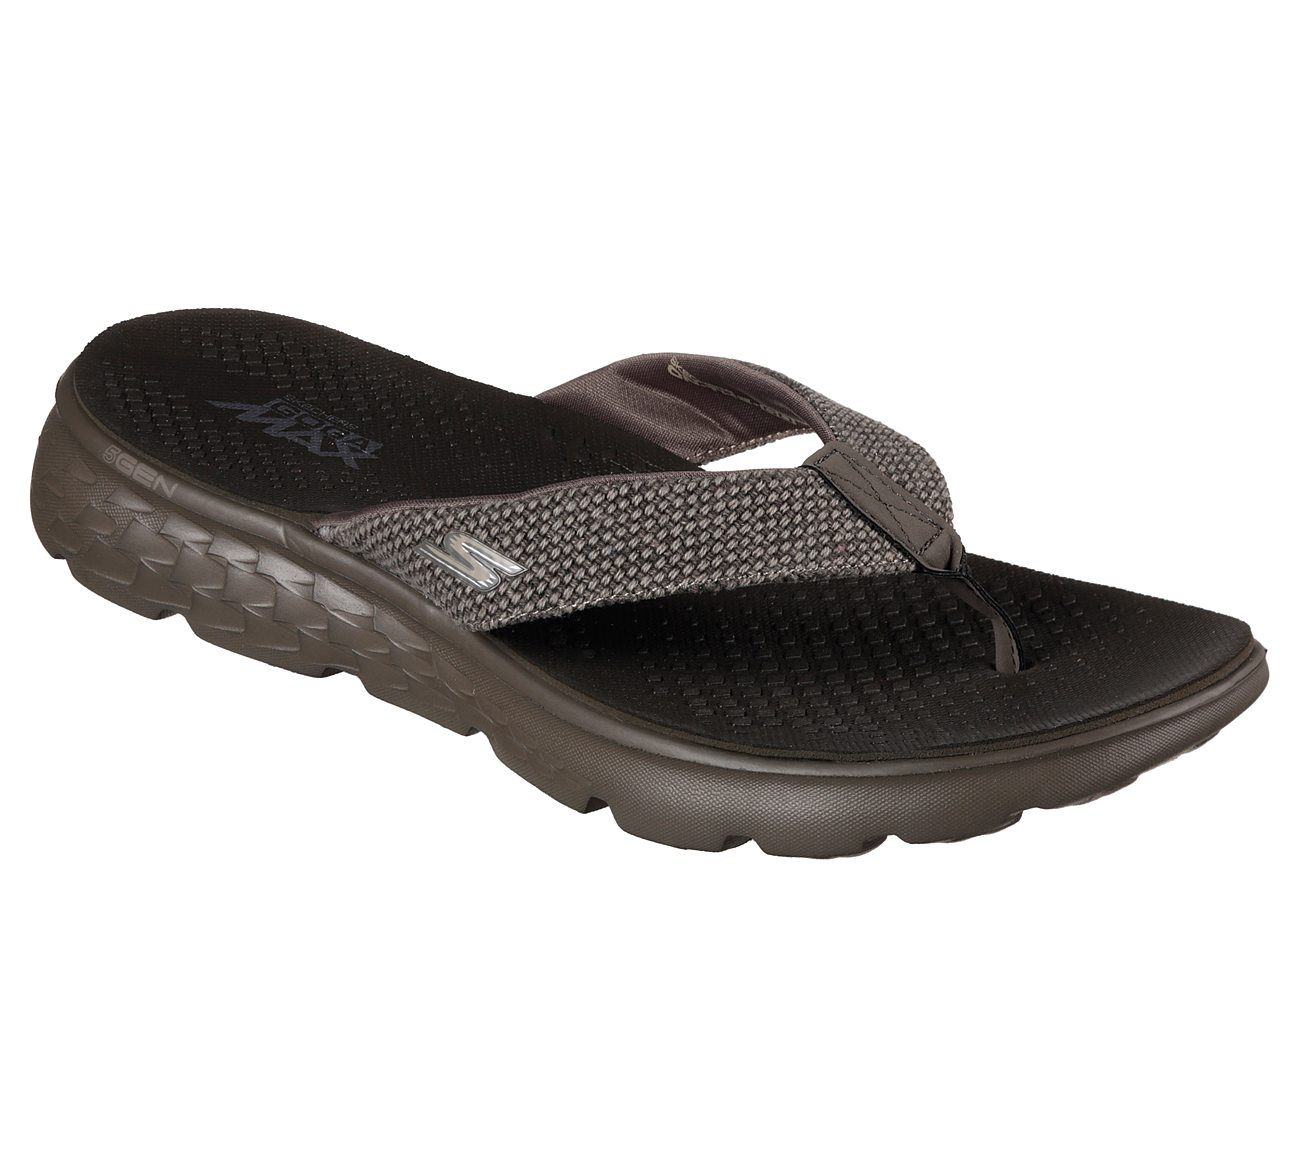 skechers on the go 400 flip flops